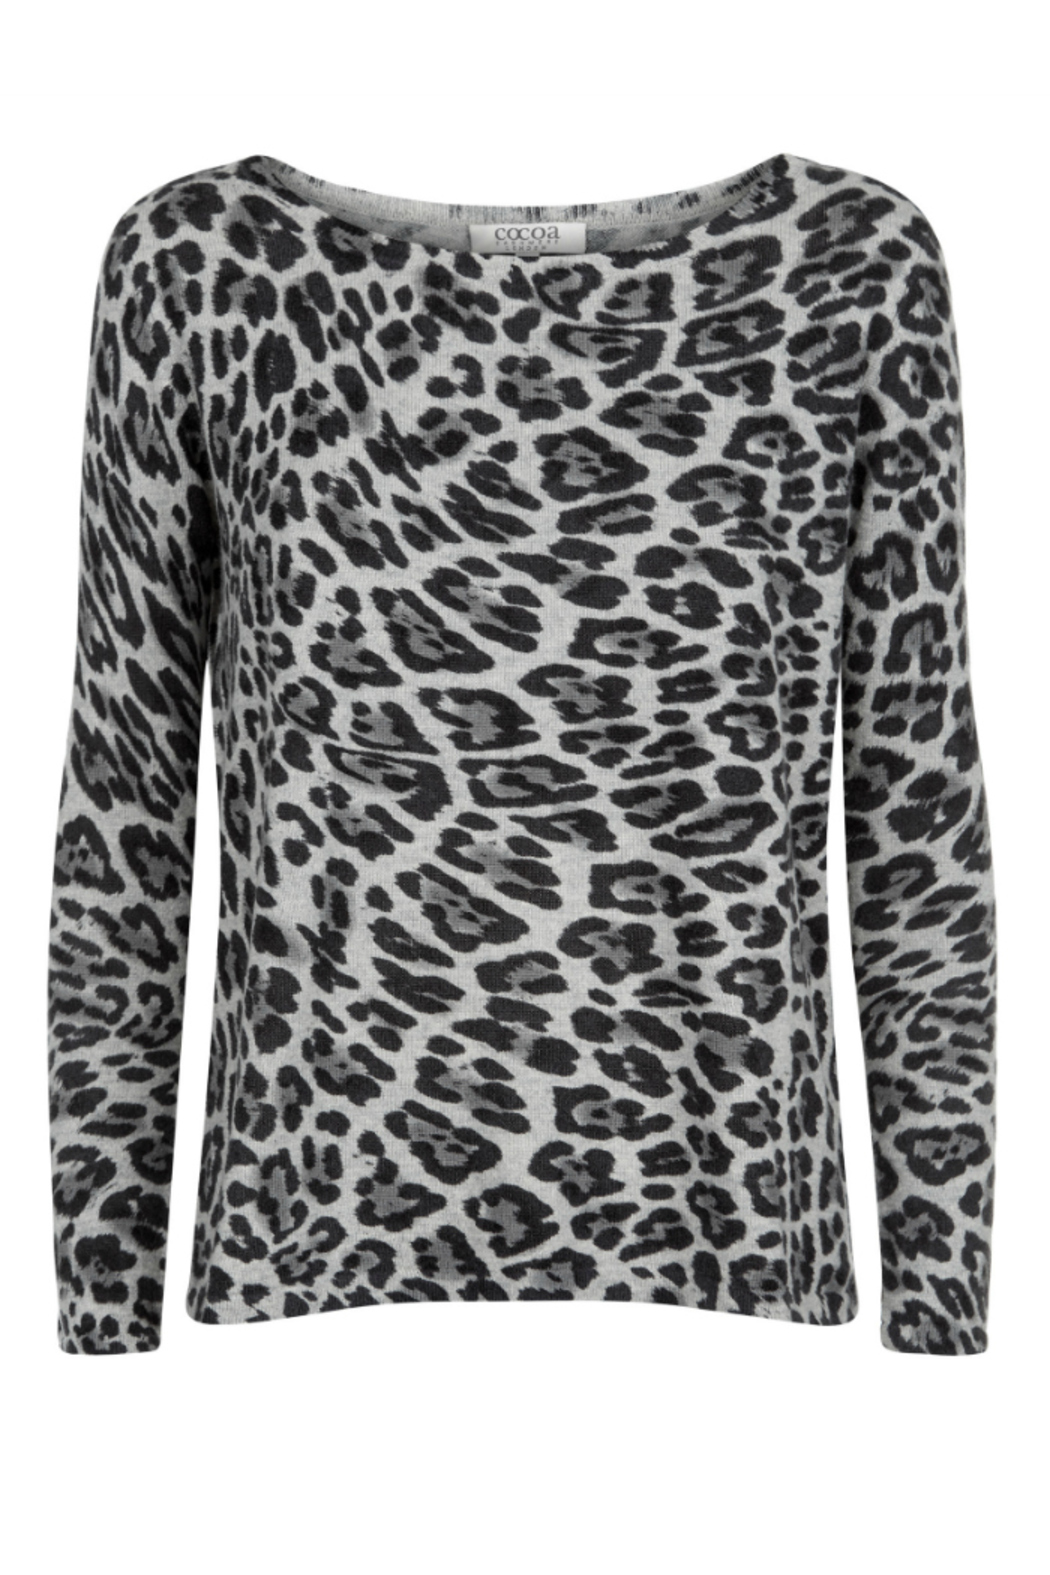 Cocoa Cashmere Animal Print Cashmere Sweater from South East ...